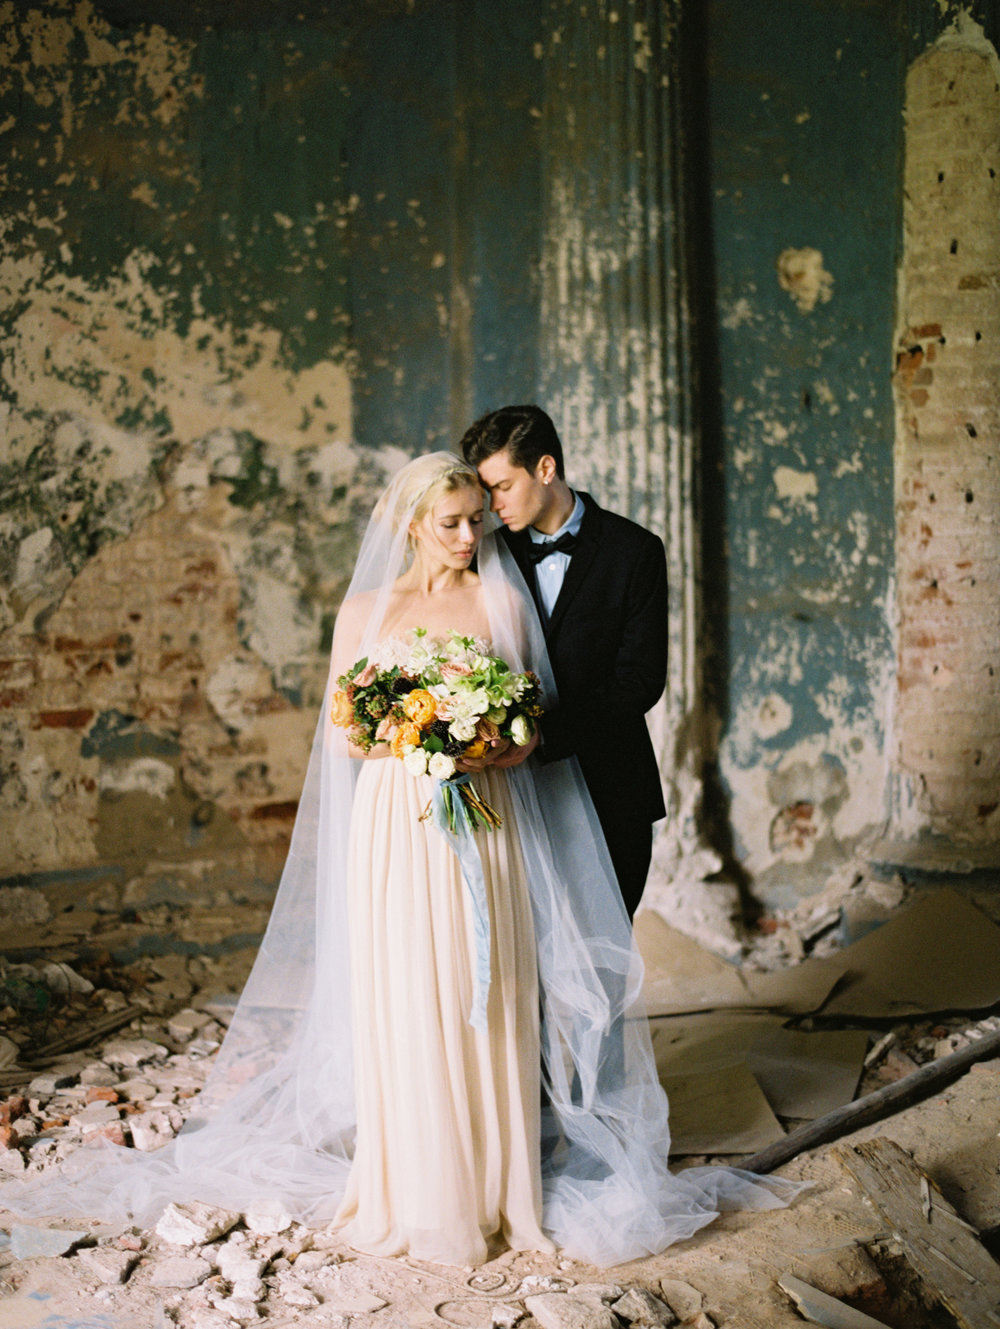 wedding-styled-shoot-russia-inspiration-elena-pavlova-photography-metamorphoses-orpheus-eurydice (29).jpg